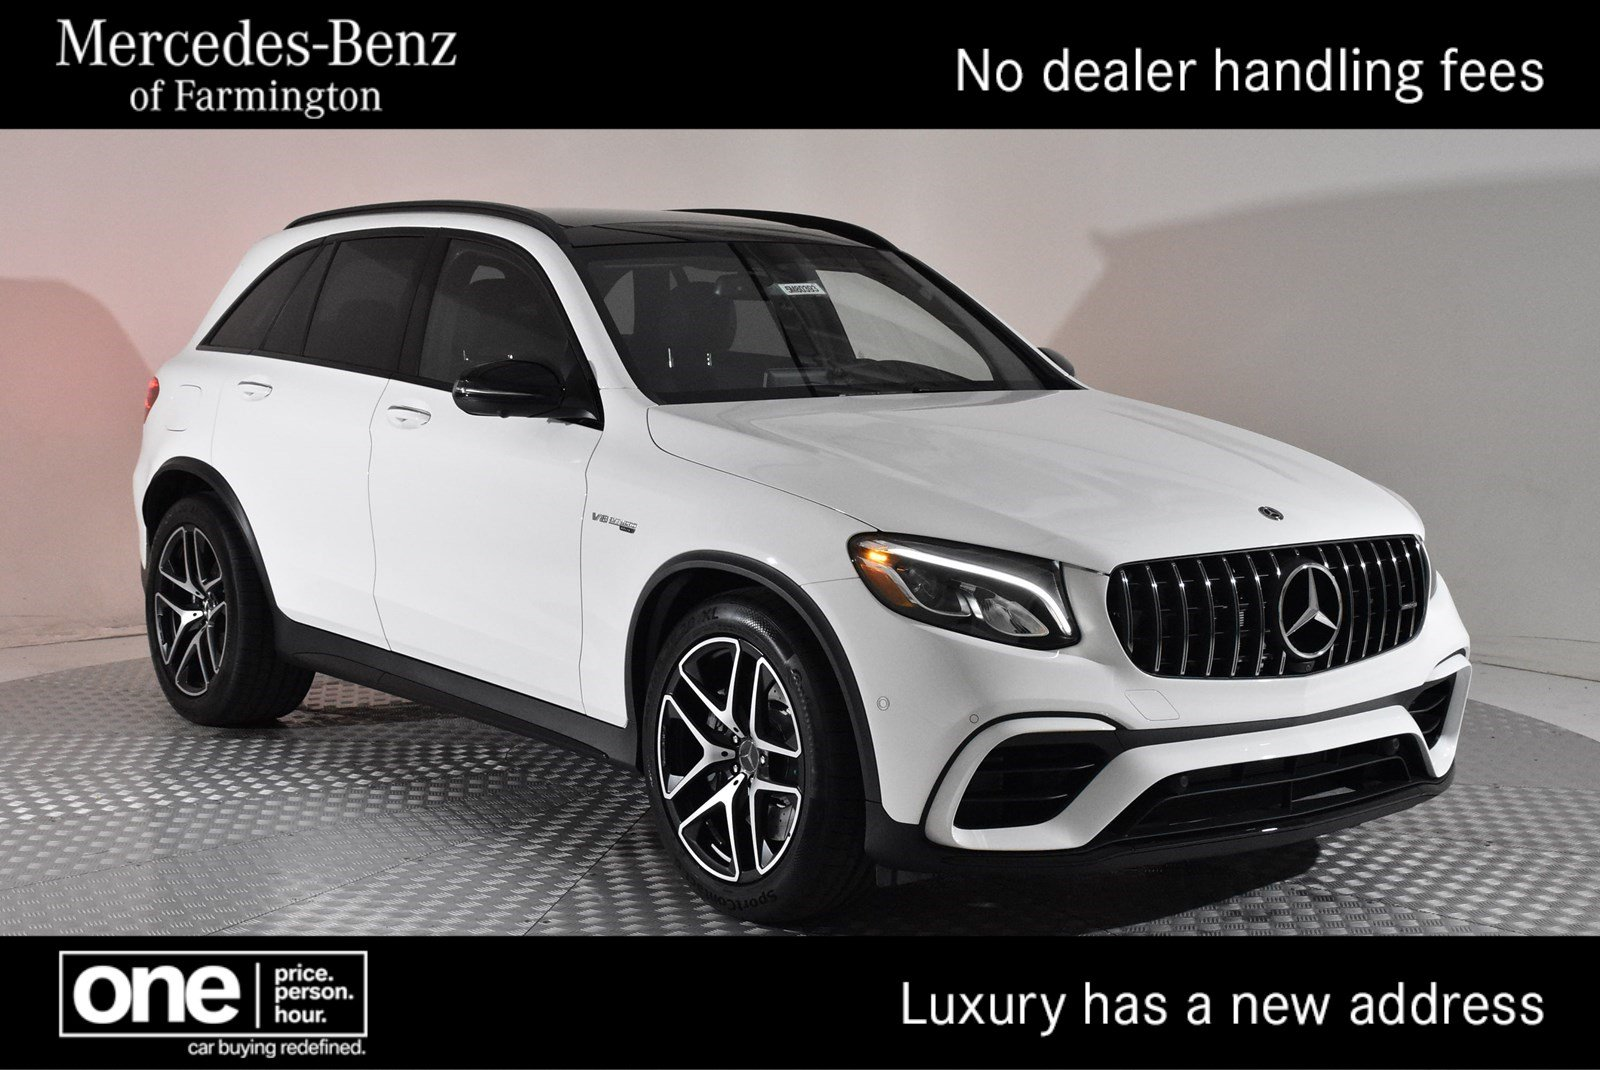 glc in amg benz suv new ae inventory awd mercedes parkersburg